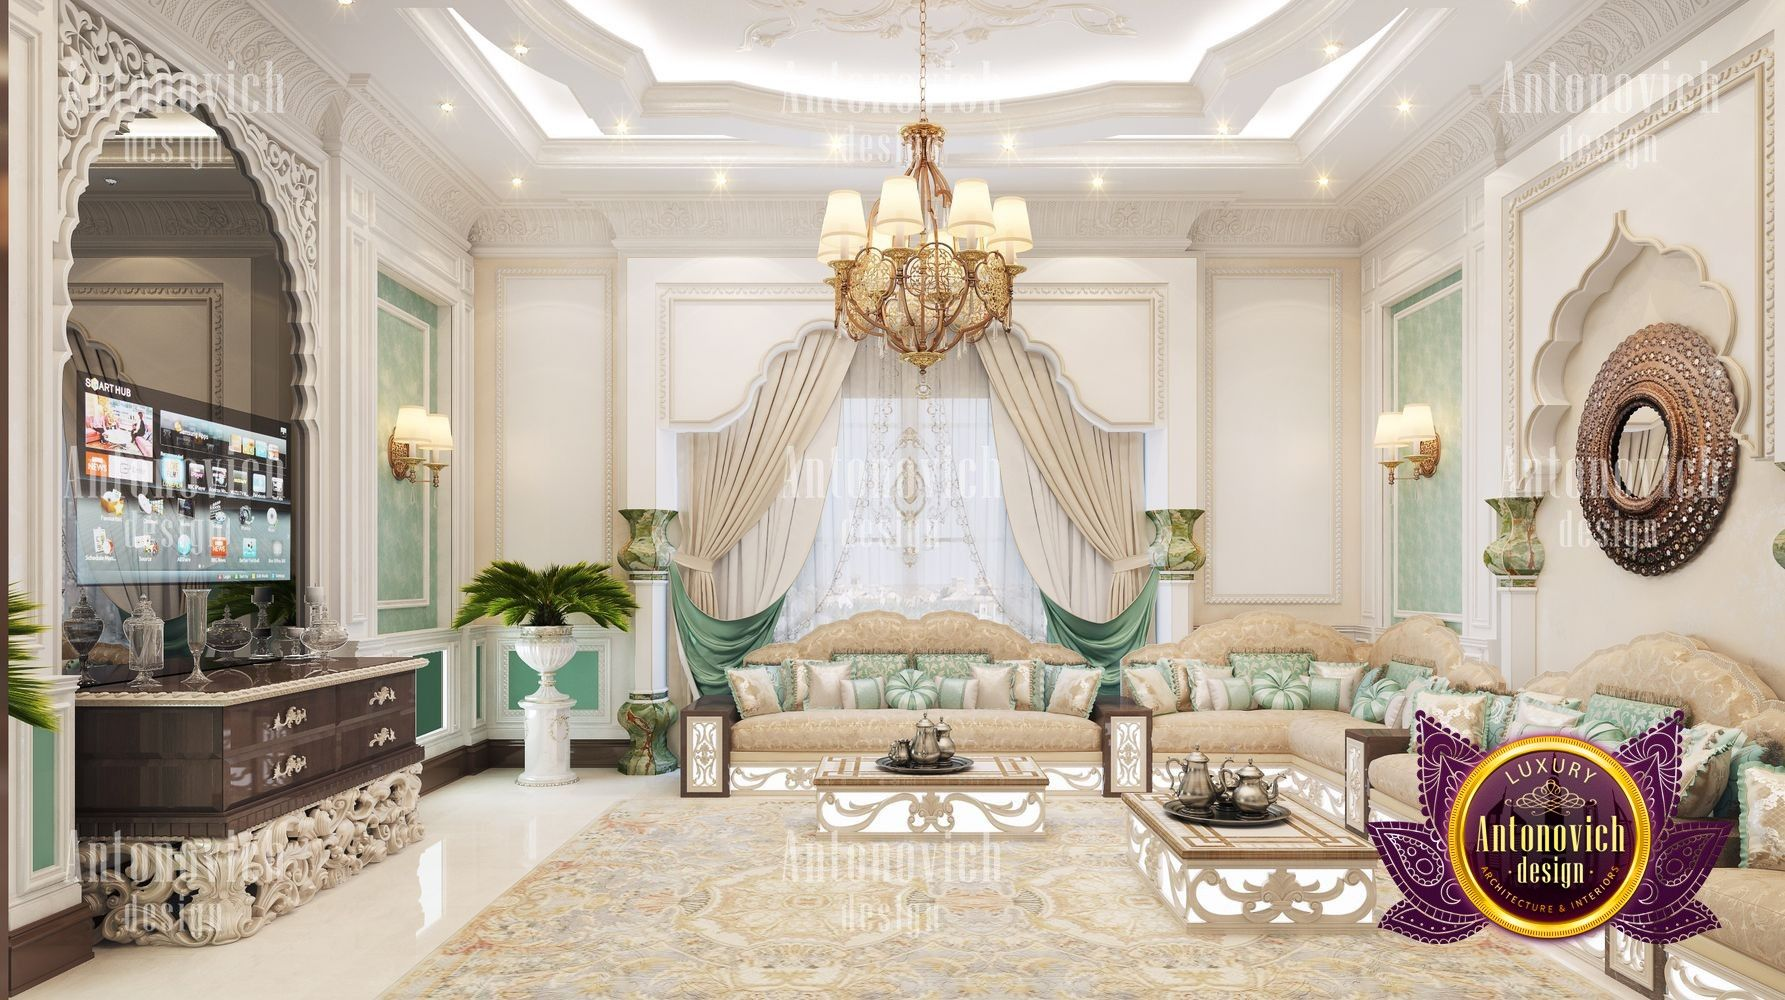 Chic Villa Interior Design If you are looking for a